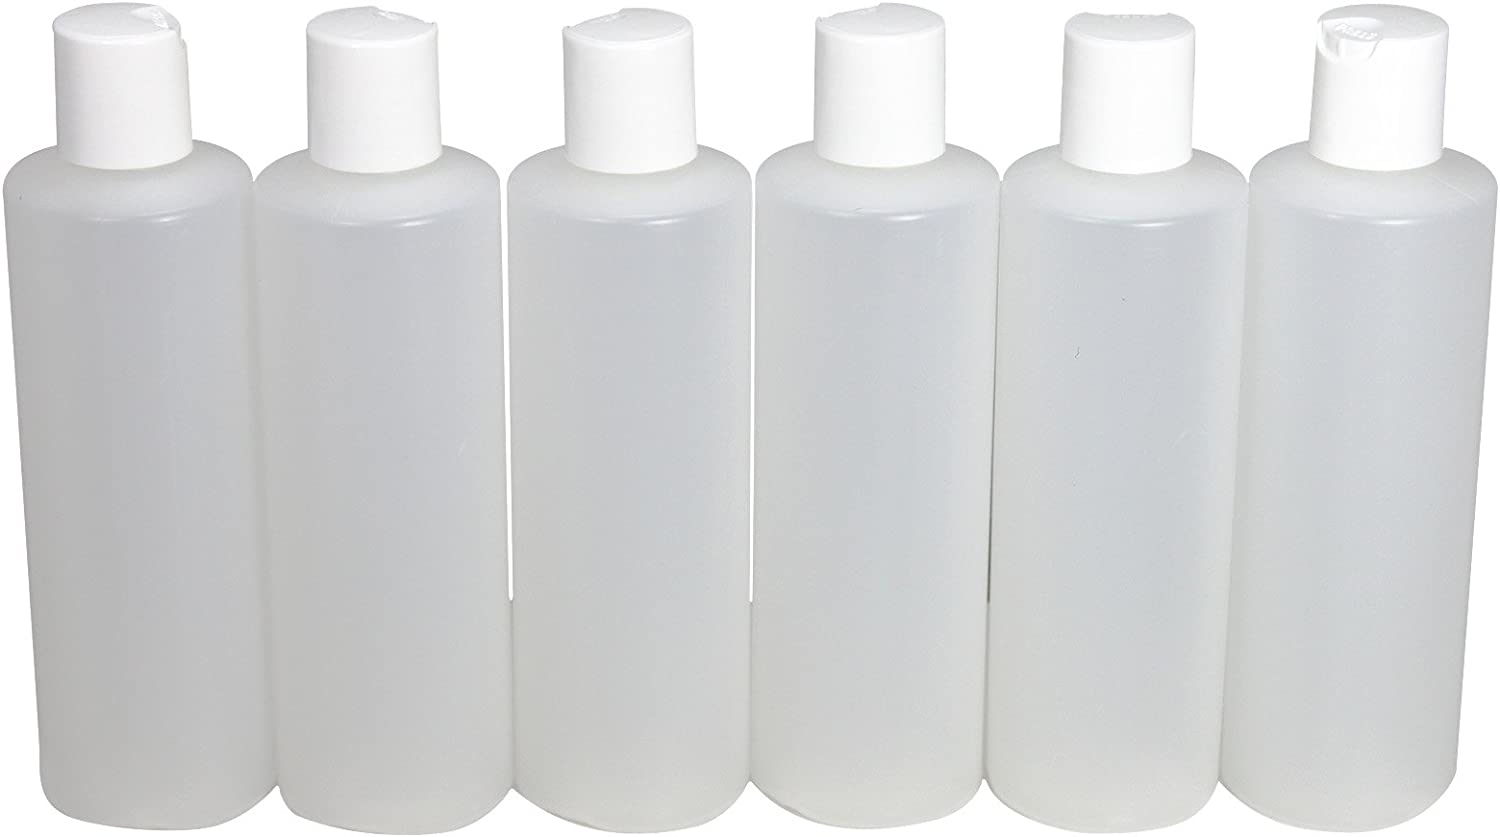 Pinnacle Mercantile 6-Pack Plastic Squeeze Bottles Flip Top 8 oz Refillable Travel Shampoo Soap Lotion Conditioner Made in USA